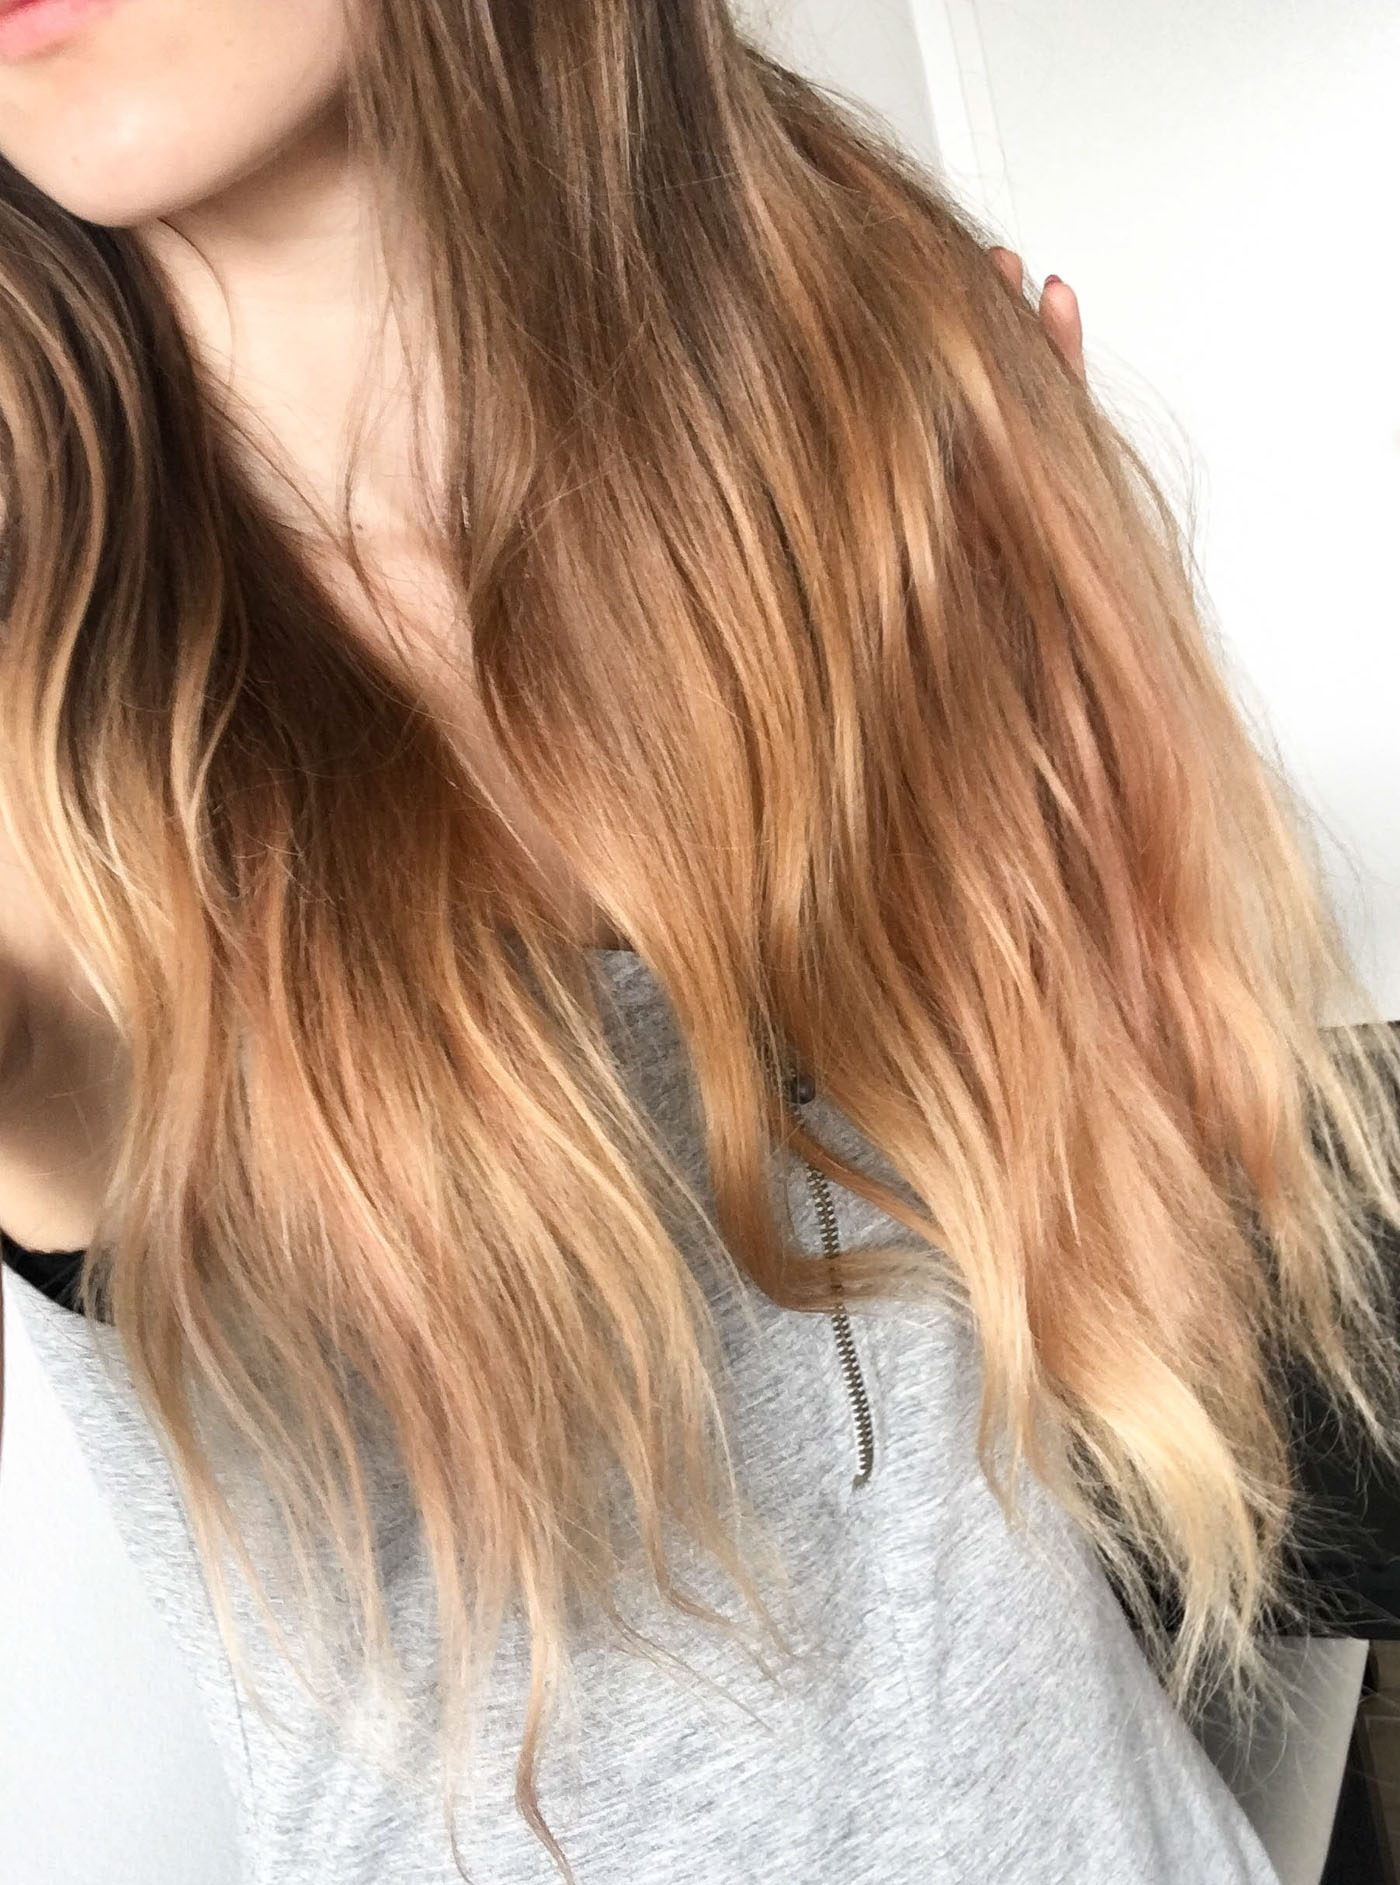 L'Oreal Colorista Washout Dirty Pink hair dye hair after one wash Cydonia